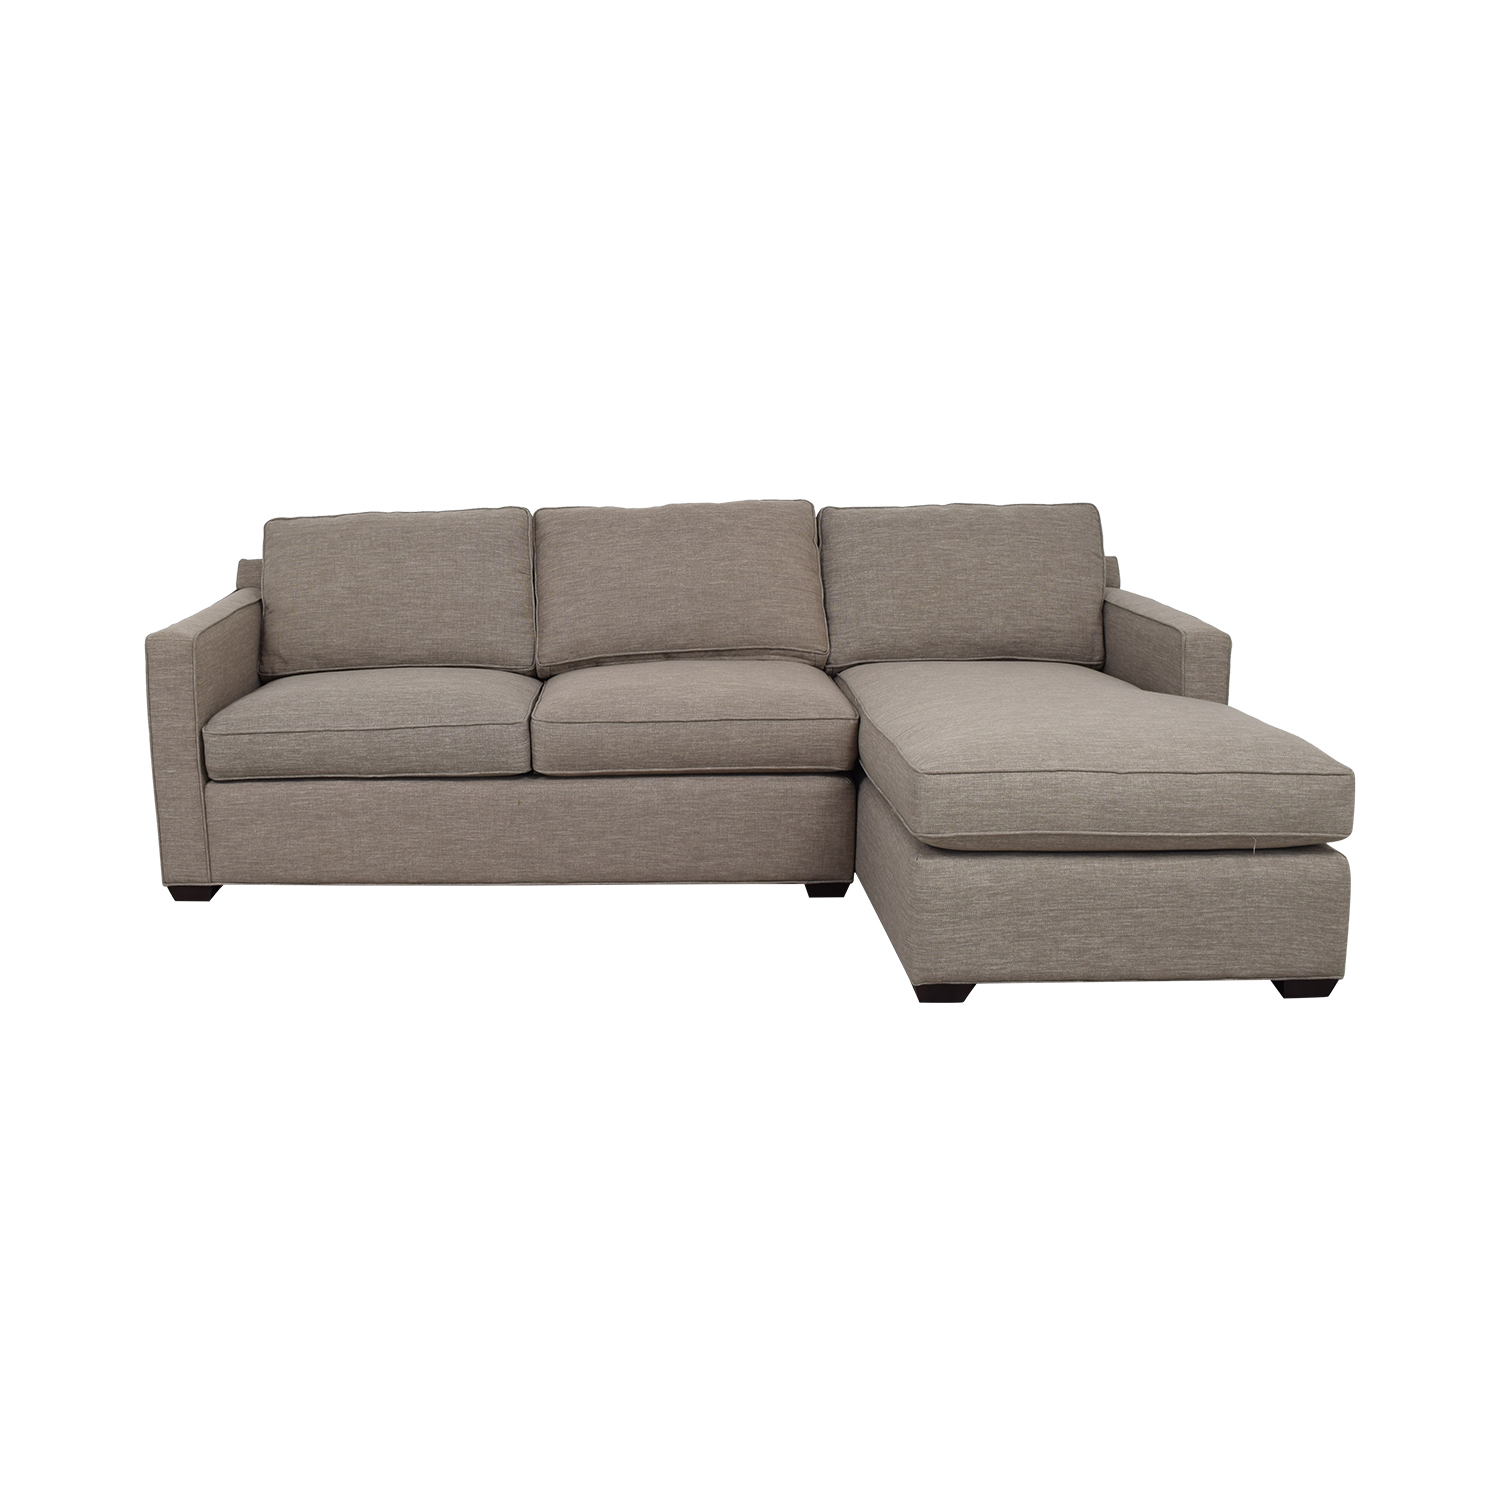 buy Crate & Barrel Grey Chaise Sectional Crate & Barrel